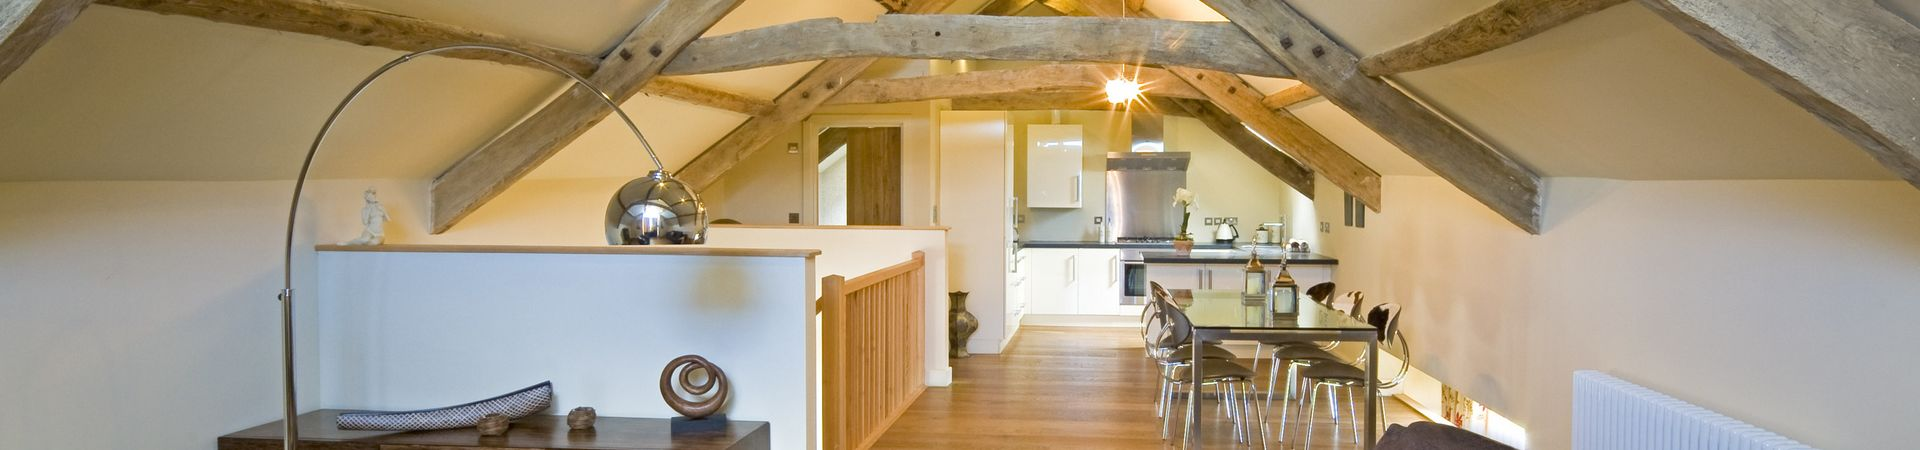 llyn peninsula cottage interior